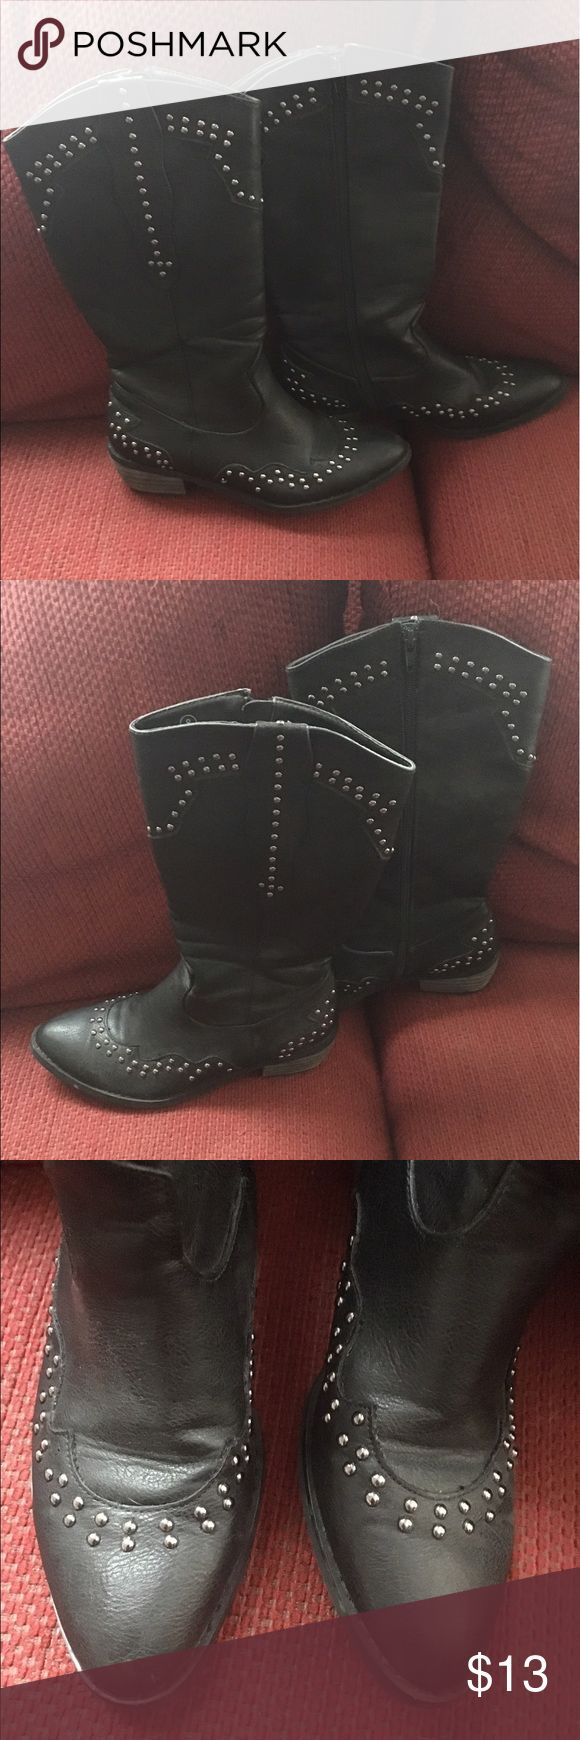 "Black Studded Zippered Ladies Cowboy Boots Never Worn! Zippers work! No silver missing studs. Purchased at 6pm.com. Shaft: 10"".  Non Smoking home. Quick ship! Shoes Heeled Boots"